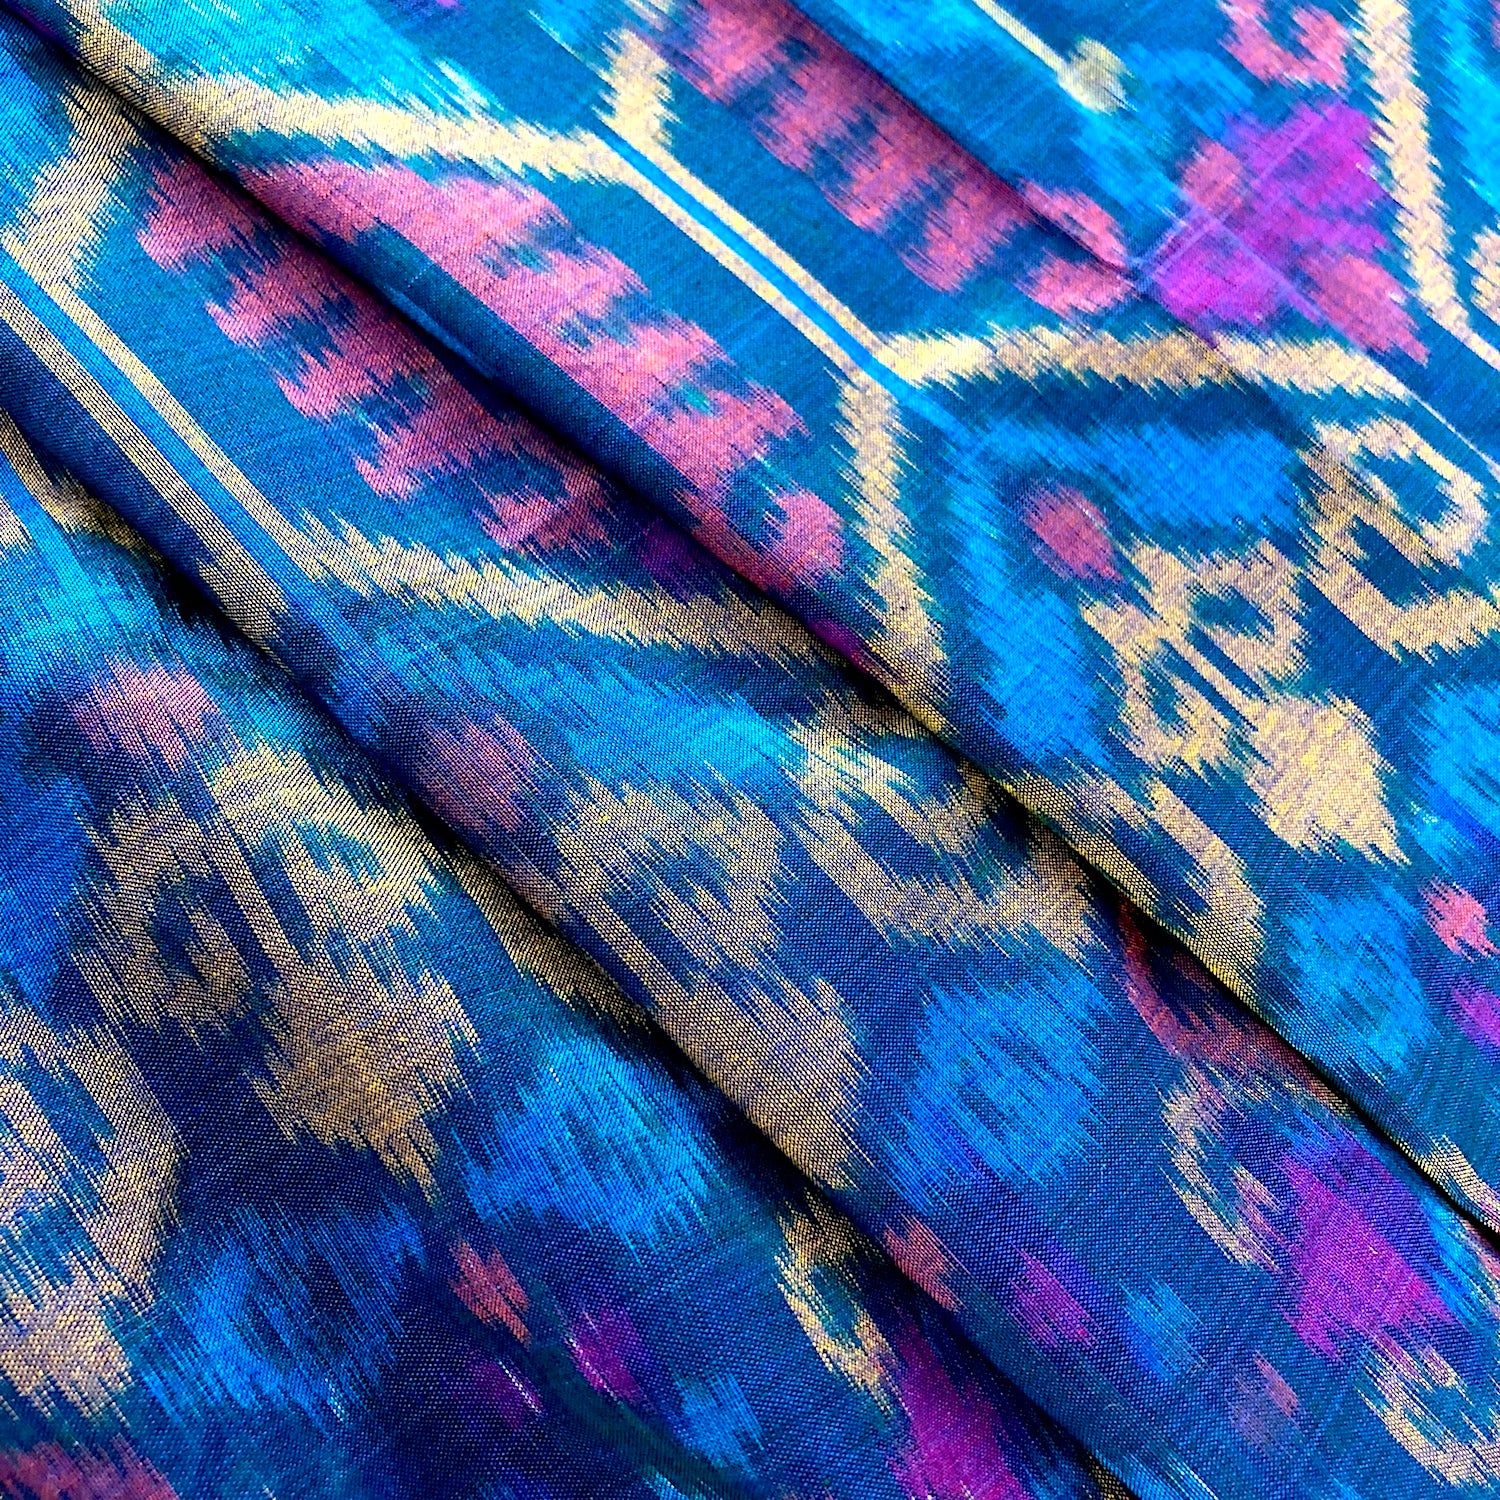 Cotton ikat sarong or decor fabric - Pallu Design